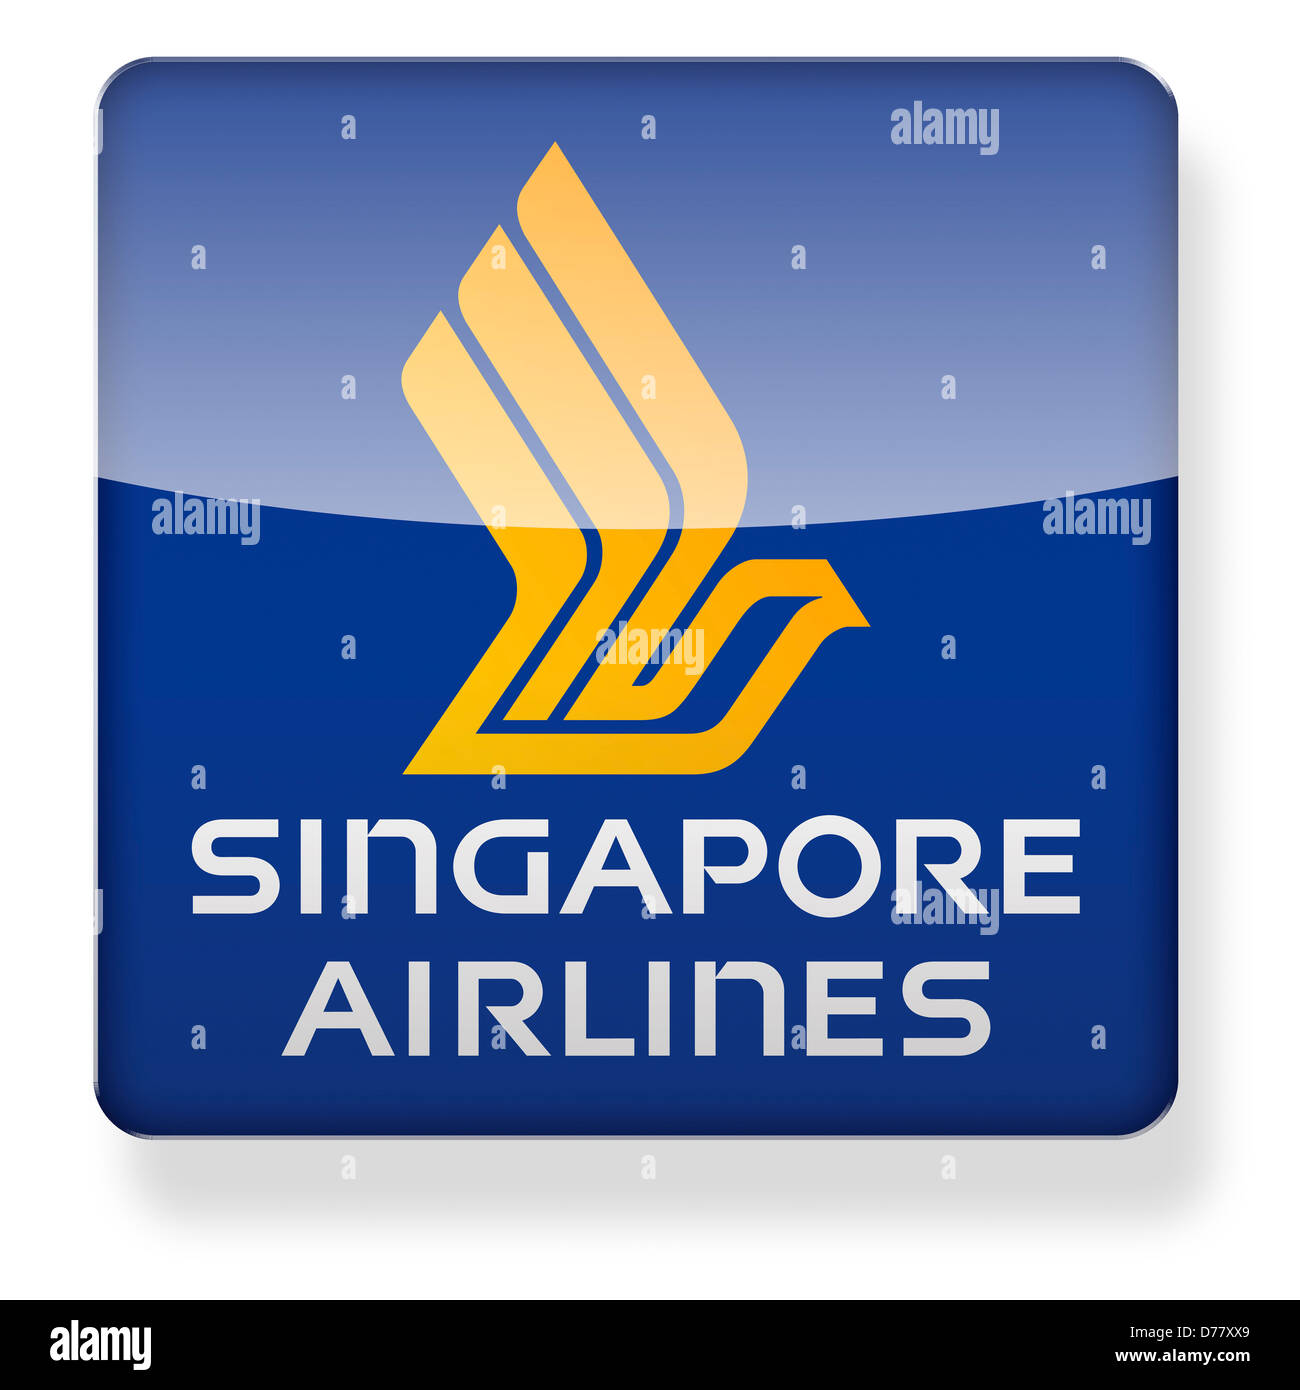 Singapore airlines logo as an app icon clipping path for Singapore airlines sito italiano